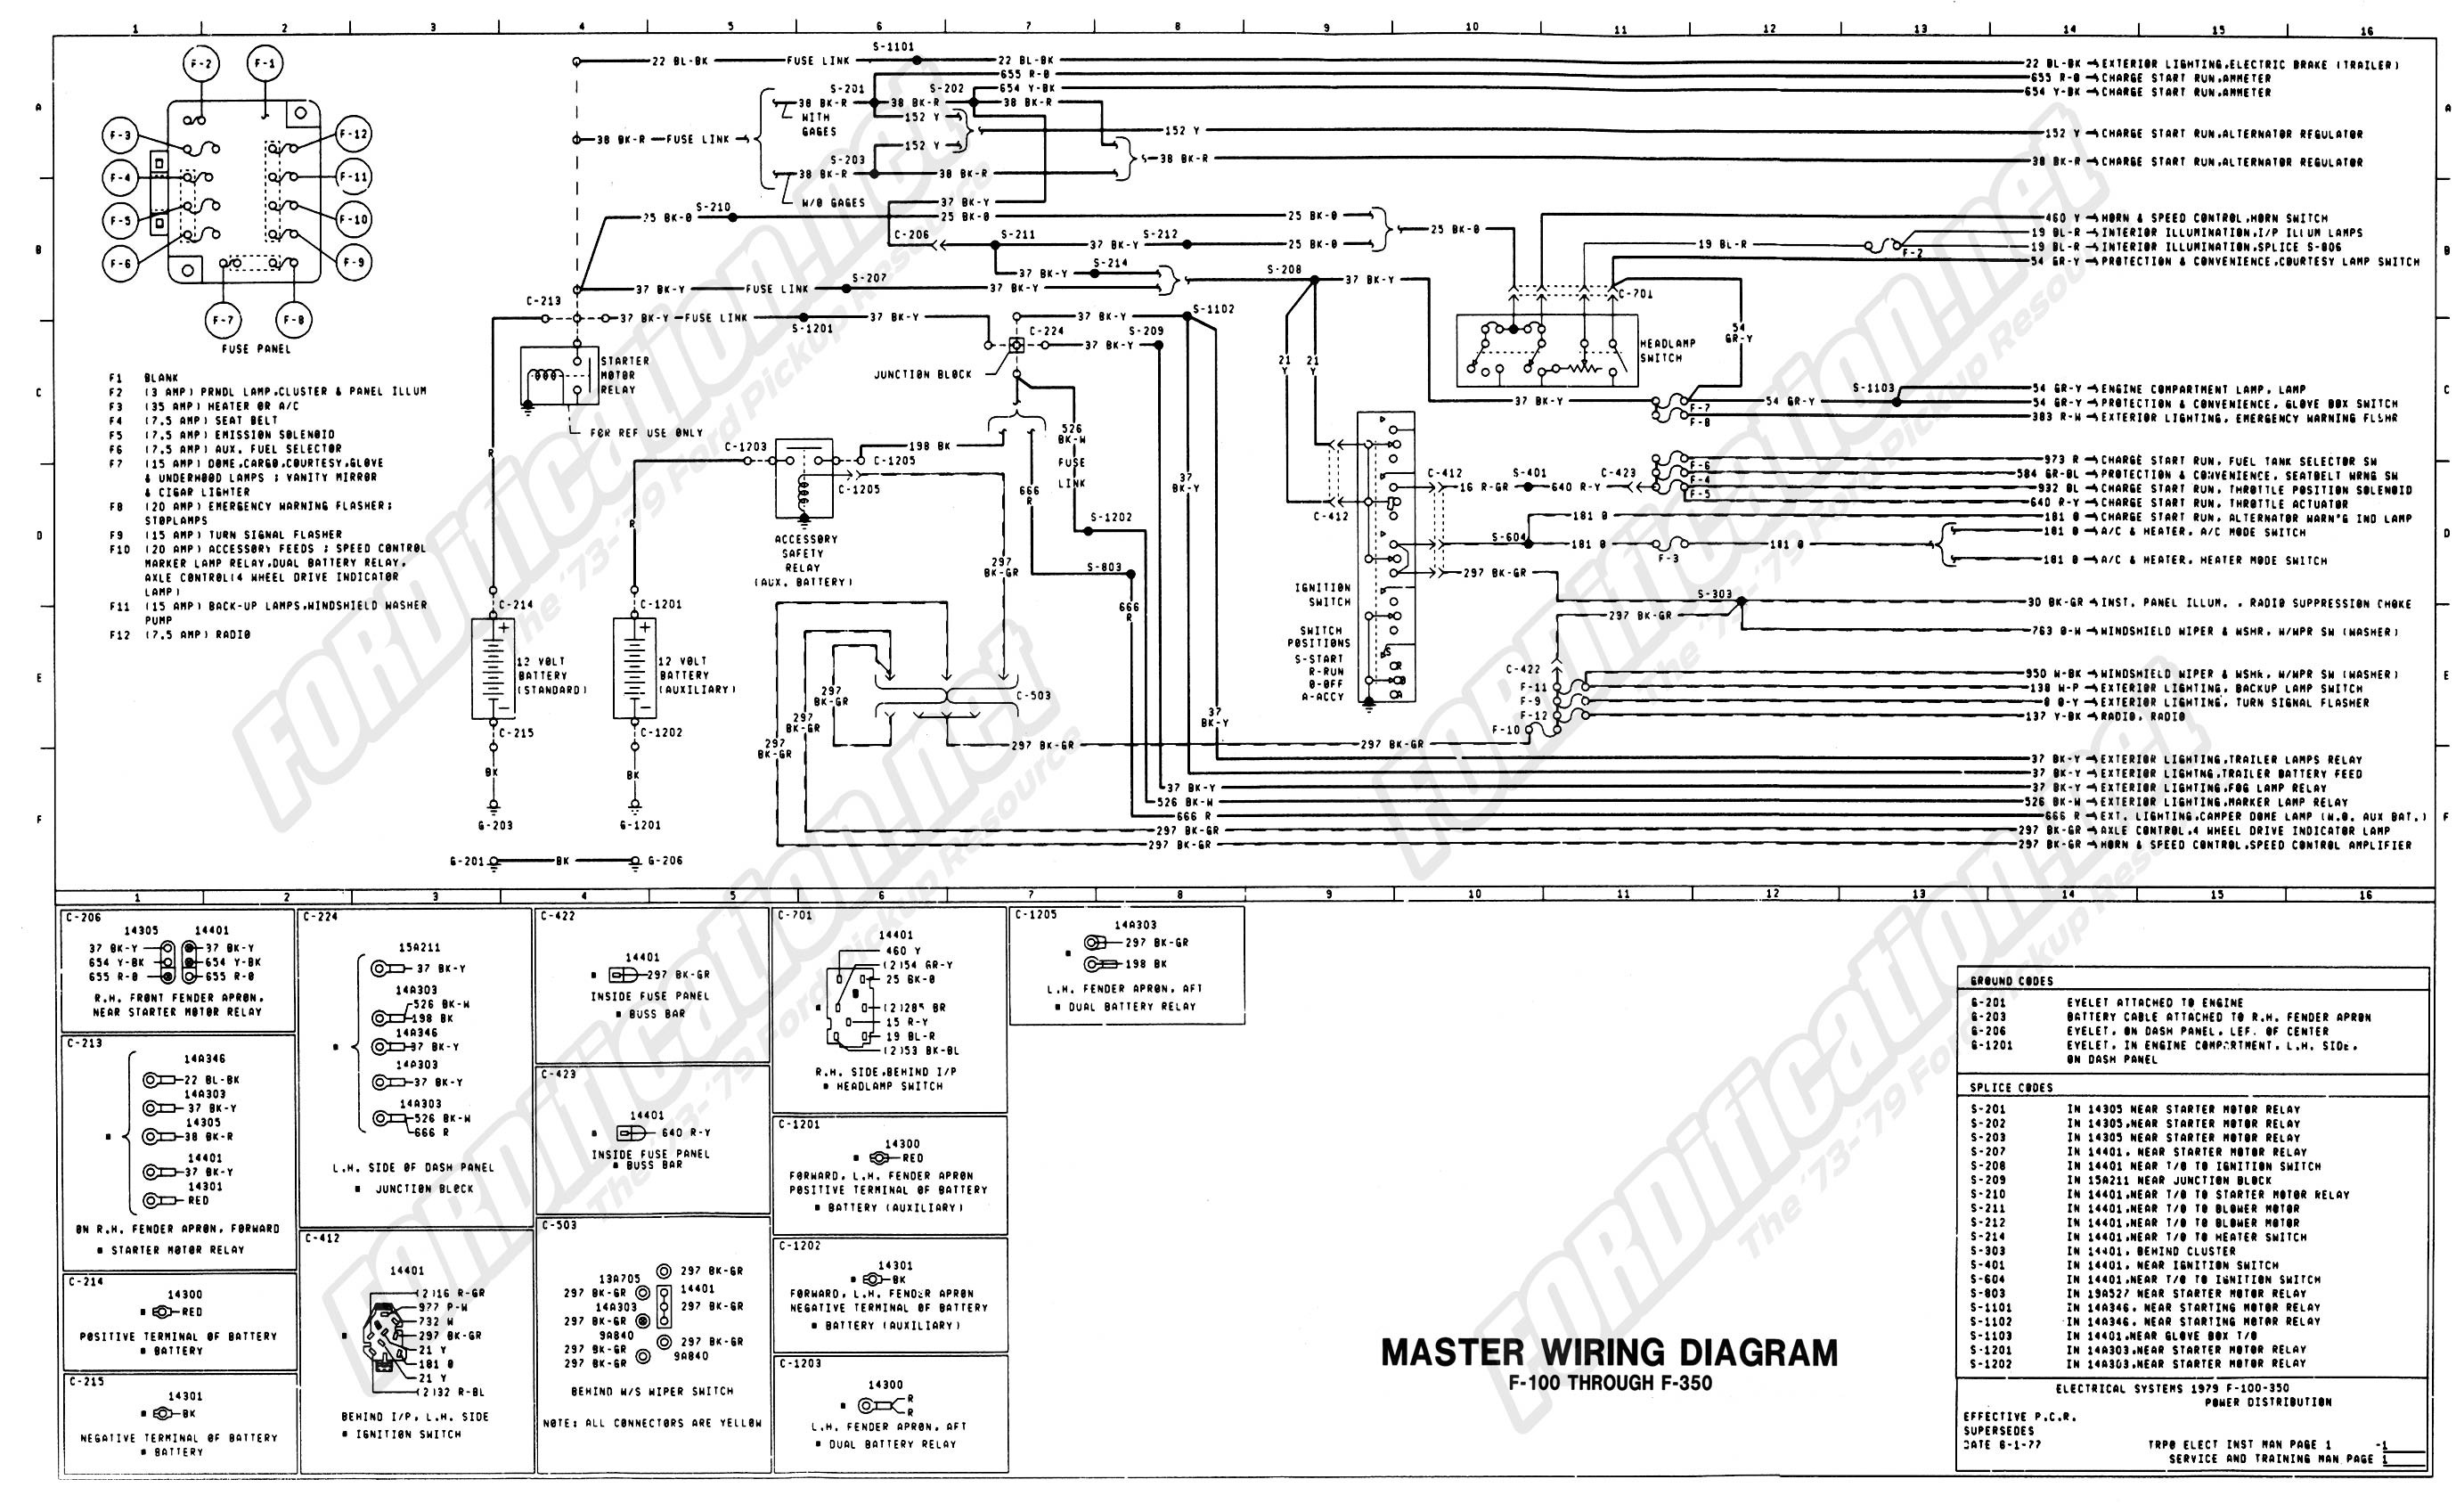 2000 ford F350 Tail Light Wiring Diagram 1973 1979 ford Truck Wiring Diagrams & Schematics fordification Of 2000 ford F350 Tail Light Wiring Diagram